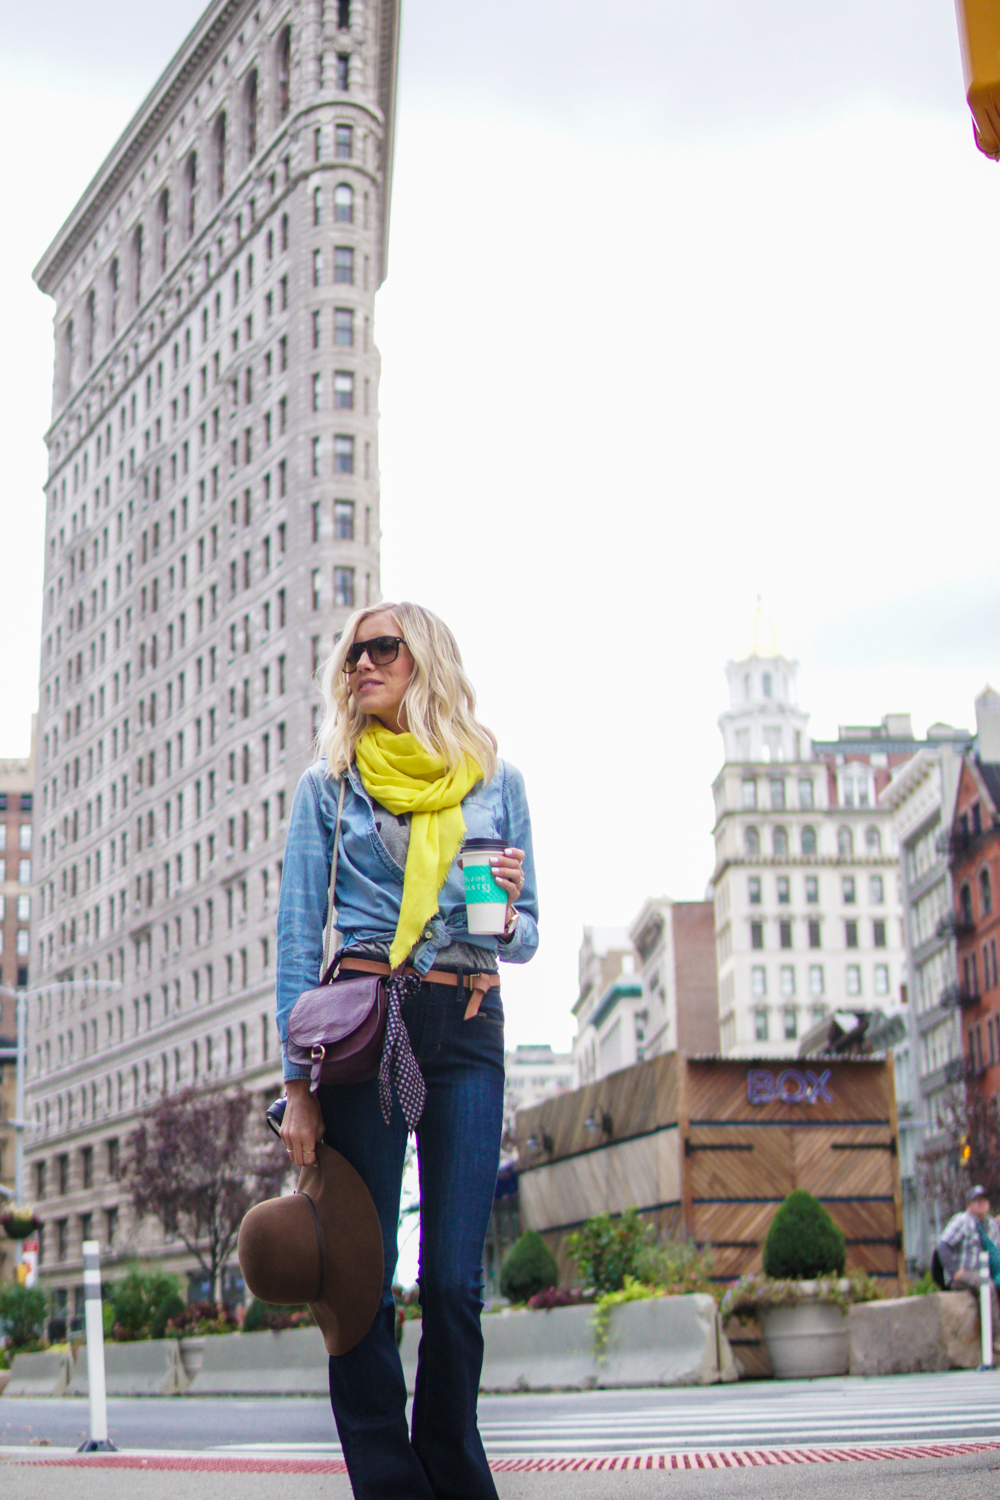 Erin Stanczyk | Lifestyle Design | EatMoveRest | EATMOVEREST YOUR BEST: TOP TRAVEL TIPS + OUR NYC RECAP